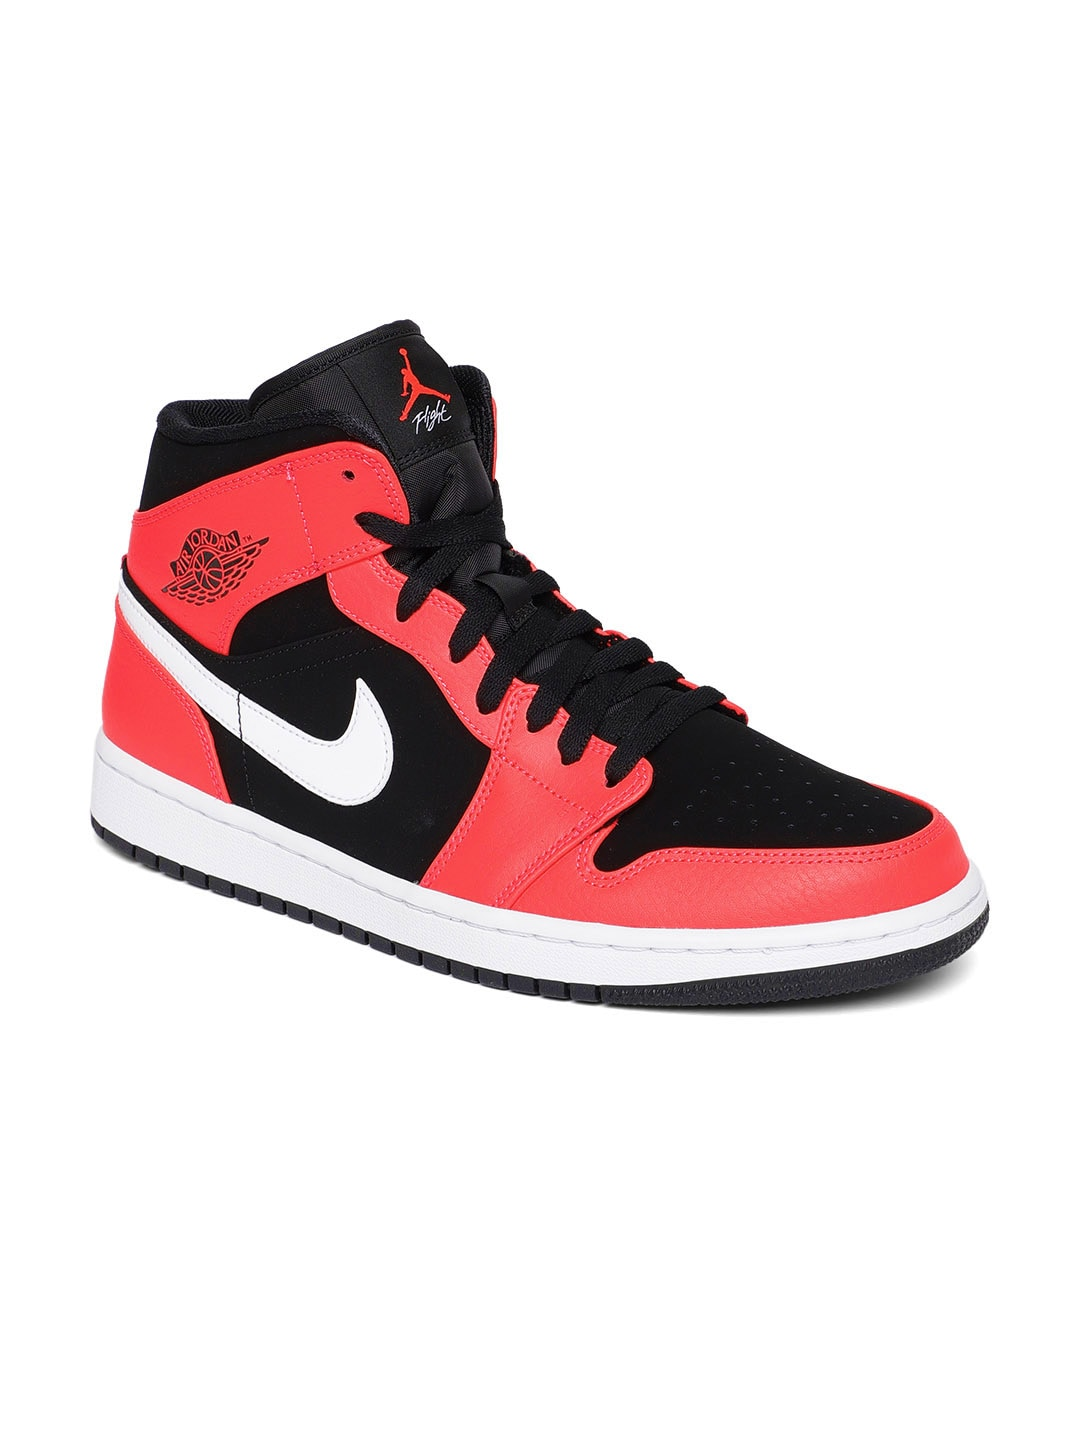 timeless design 3c52e 4f134 Nike Shoes - Buy Nike Shoes for Men, Women   Kids Online   Myntra